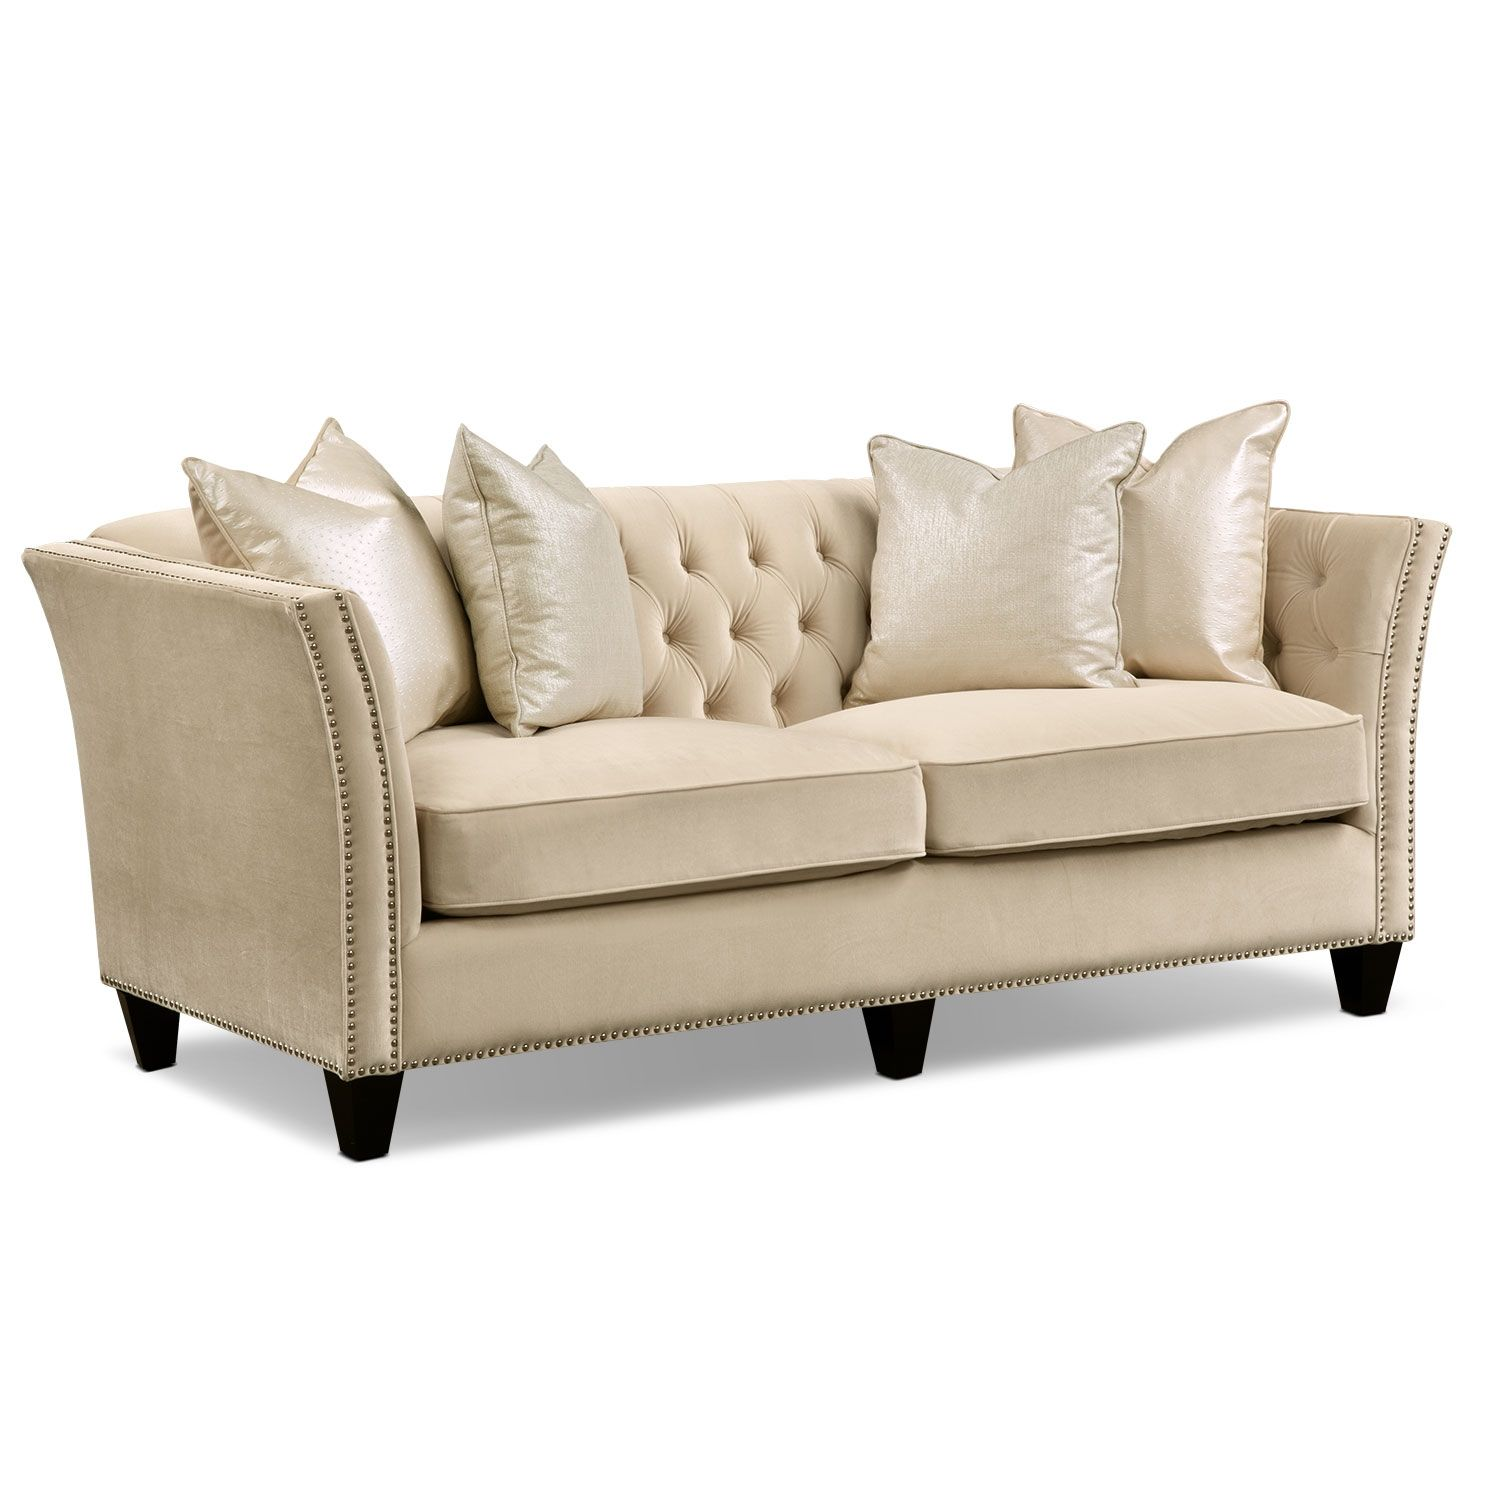 living room furniture nicole pearl sofa i want it now